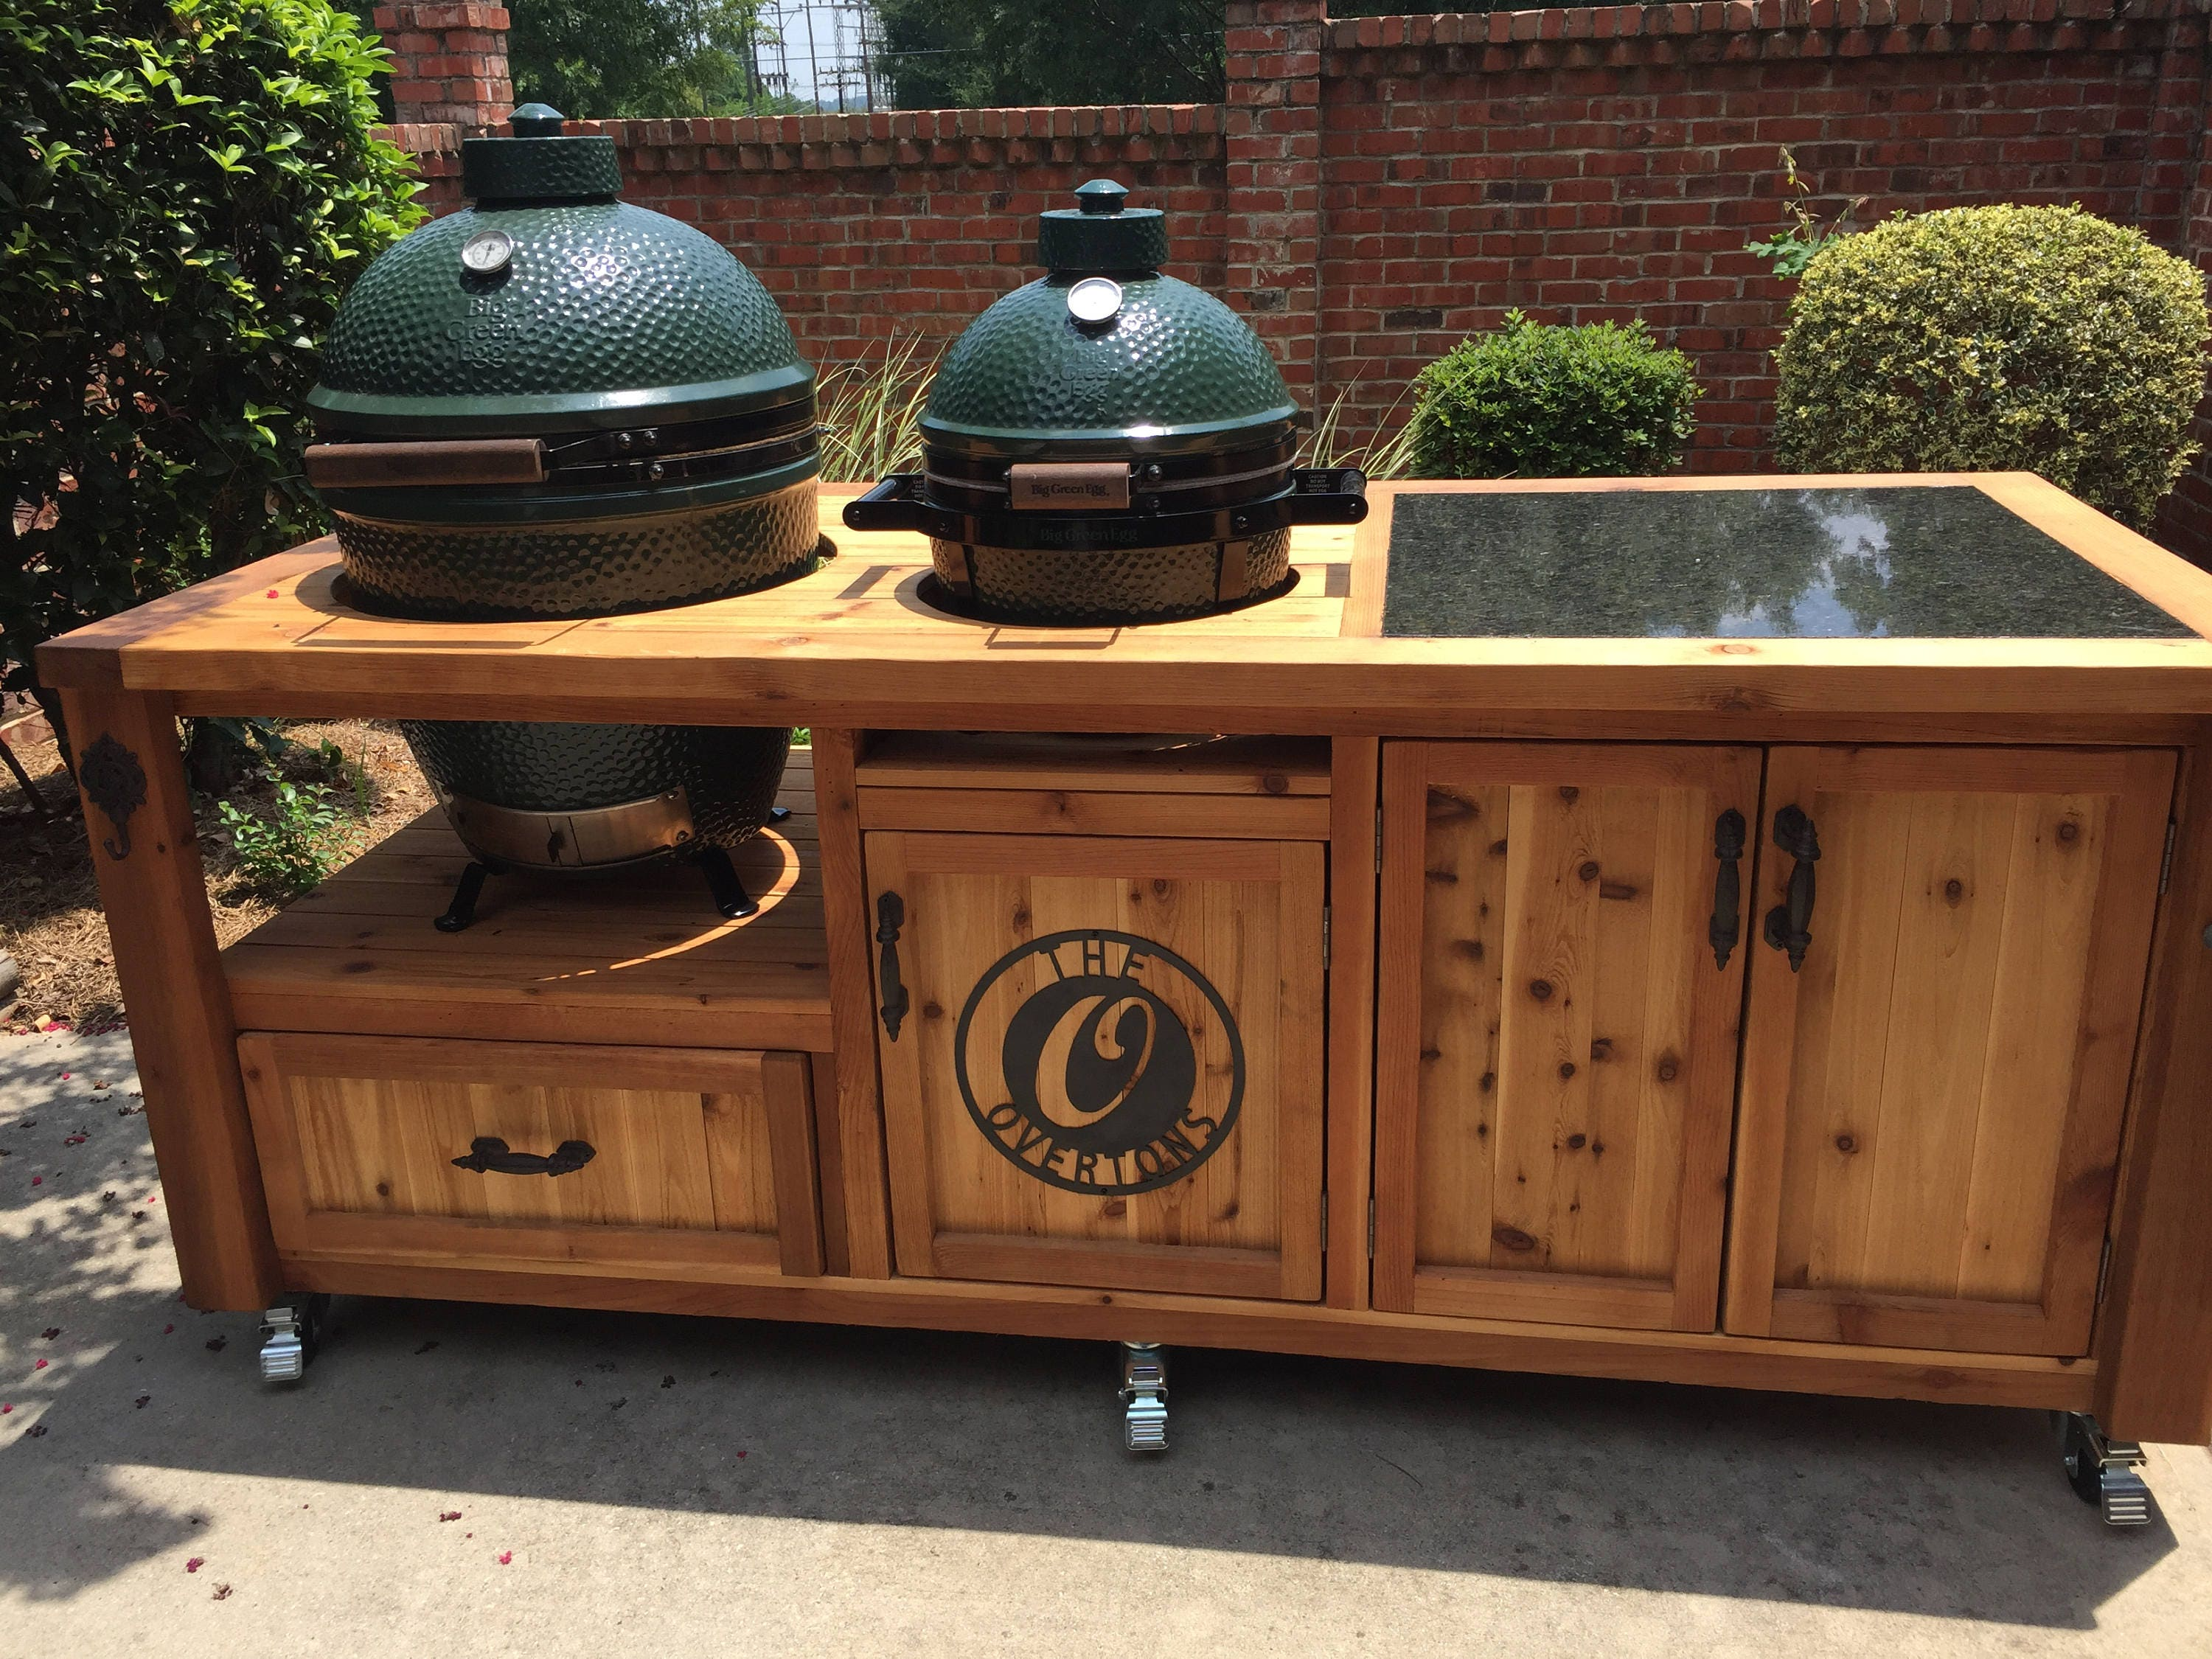 Dual Grill Cabinet For Kamado Joe Primo Or Big Green Egg